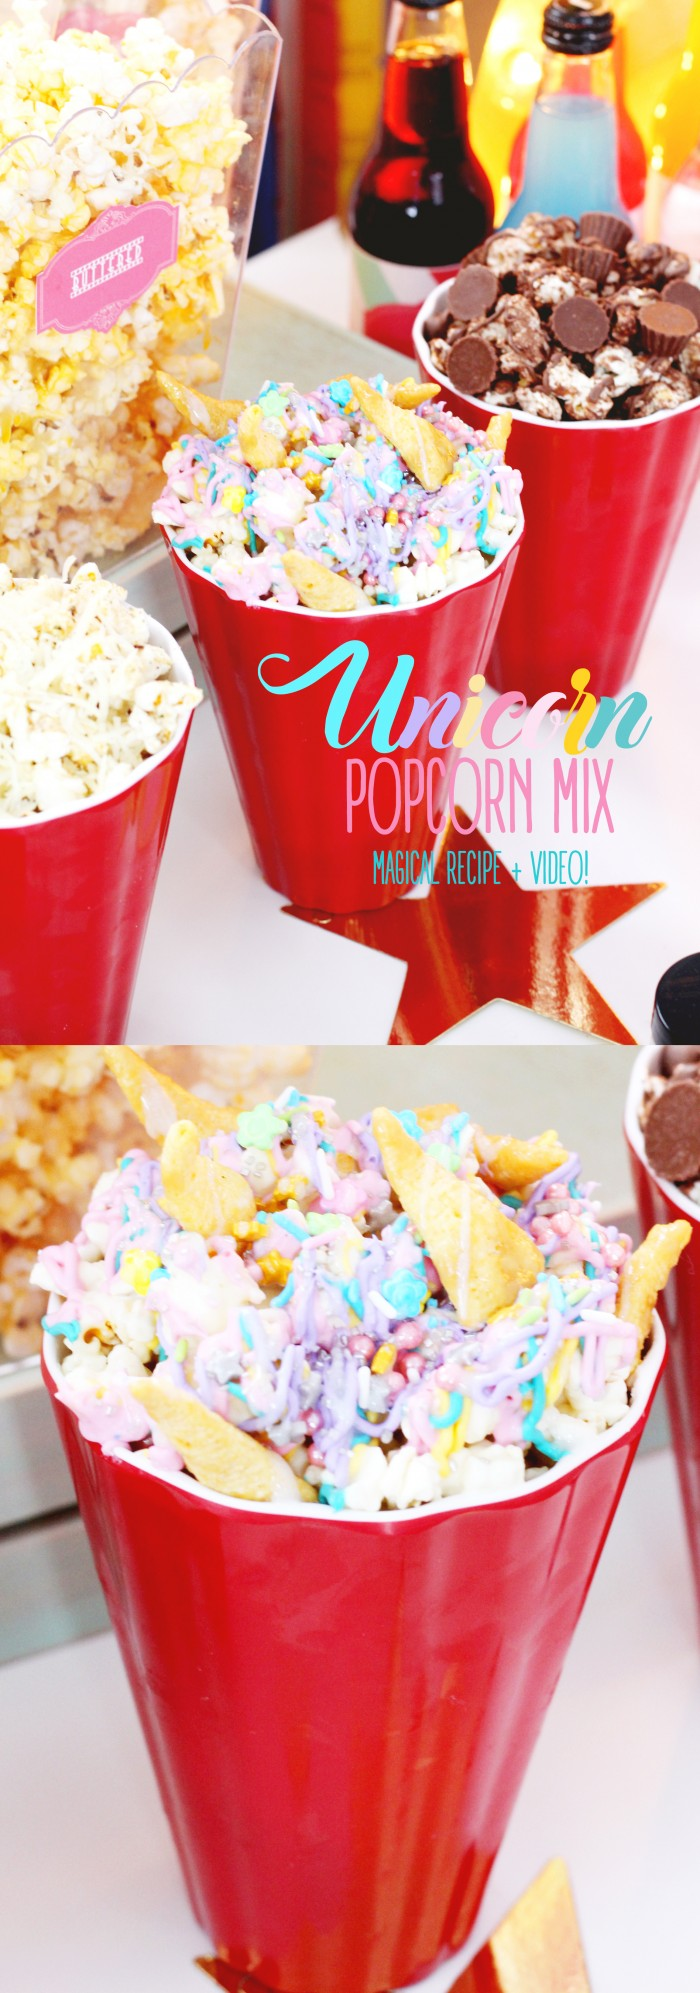 Colorful and decadent UNICORN popcorn mix recipe with video!